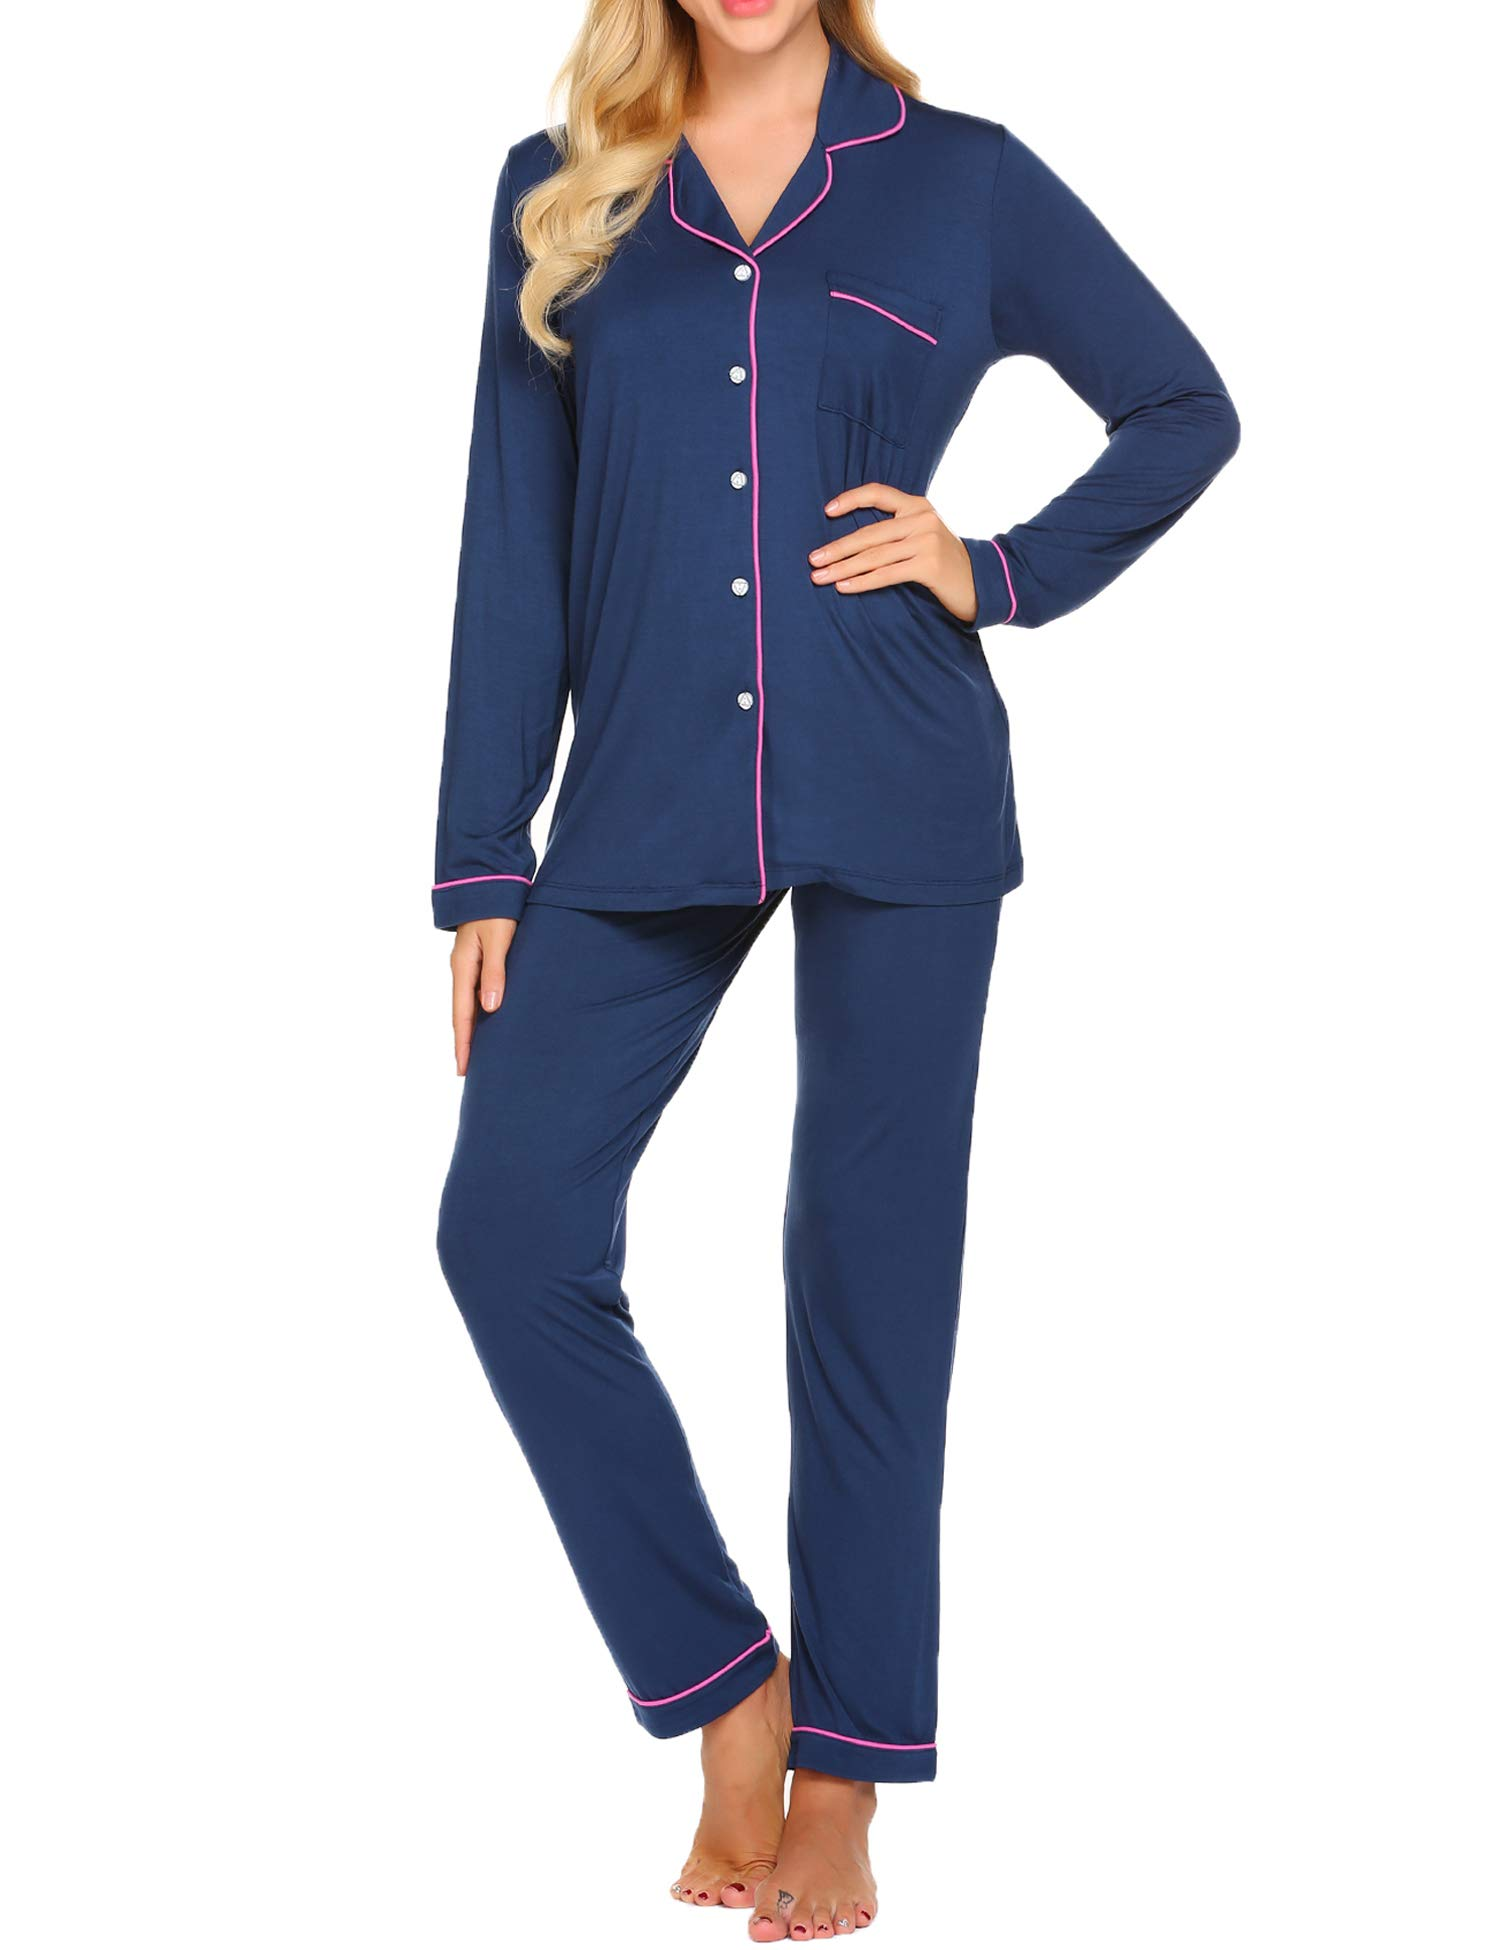 Ekouaer Pajama Set Womens Soft Sleepwear Long Sleeve Pjs Top Long Lounge Pants,Navy,Large